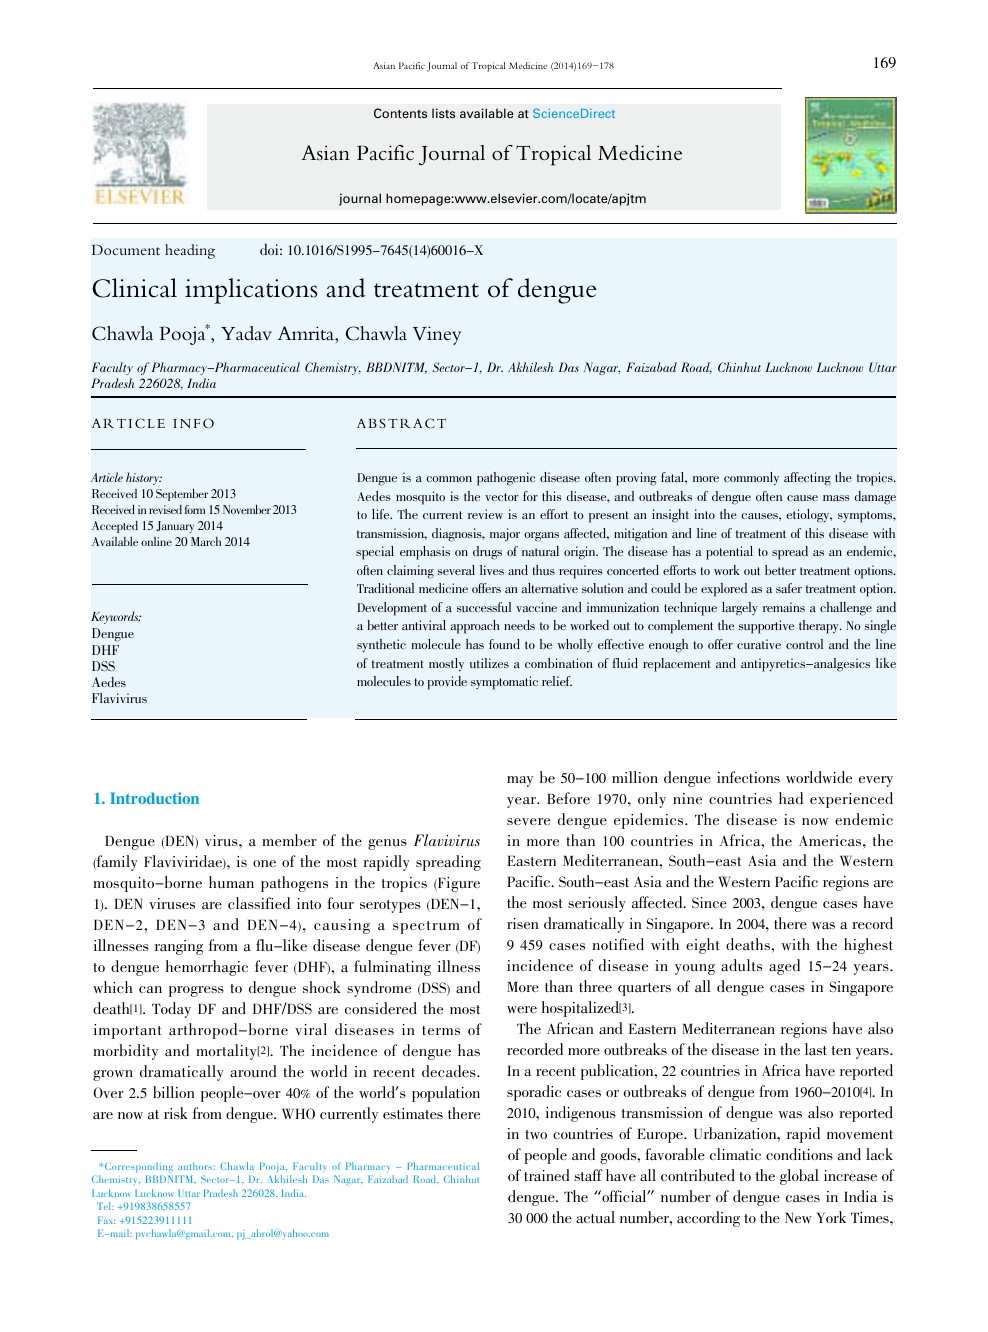 Clinical implications and treatment of dengue – topic of research